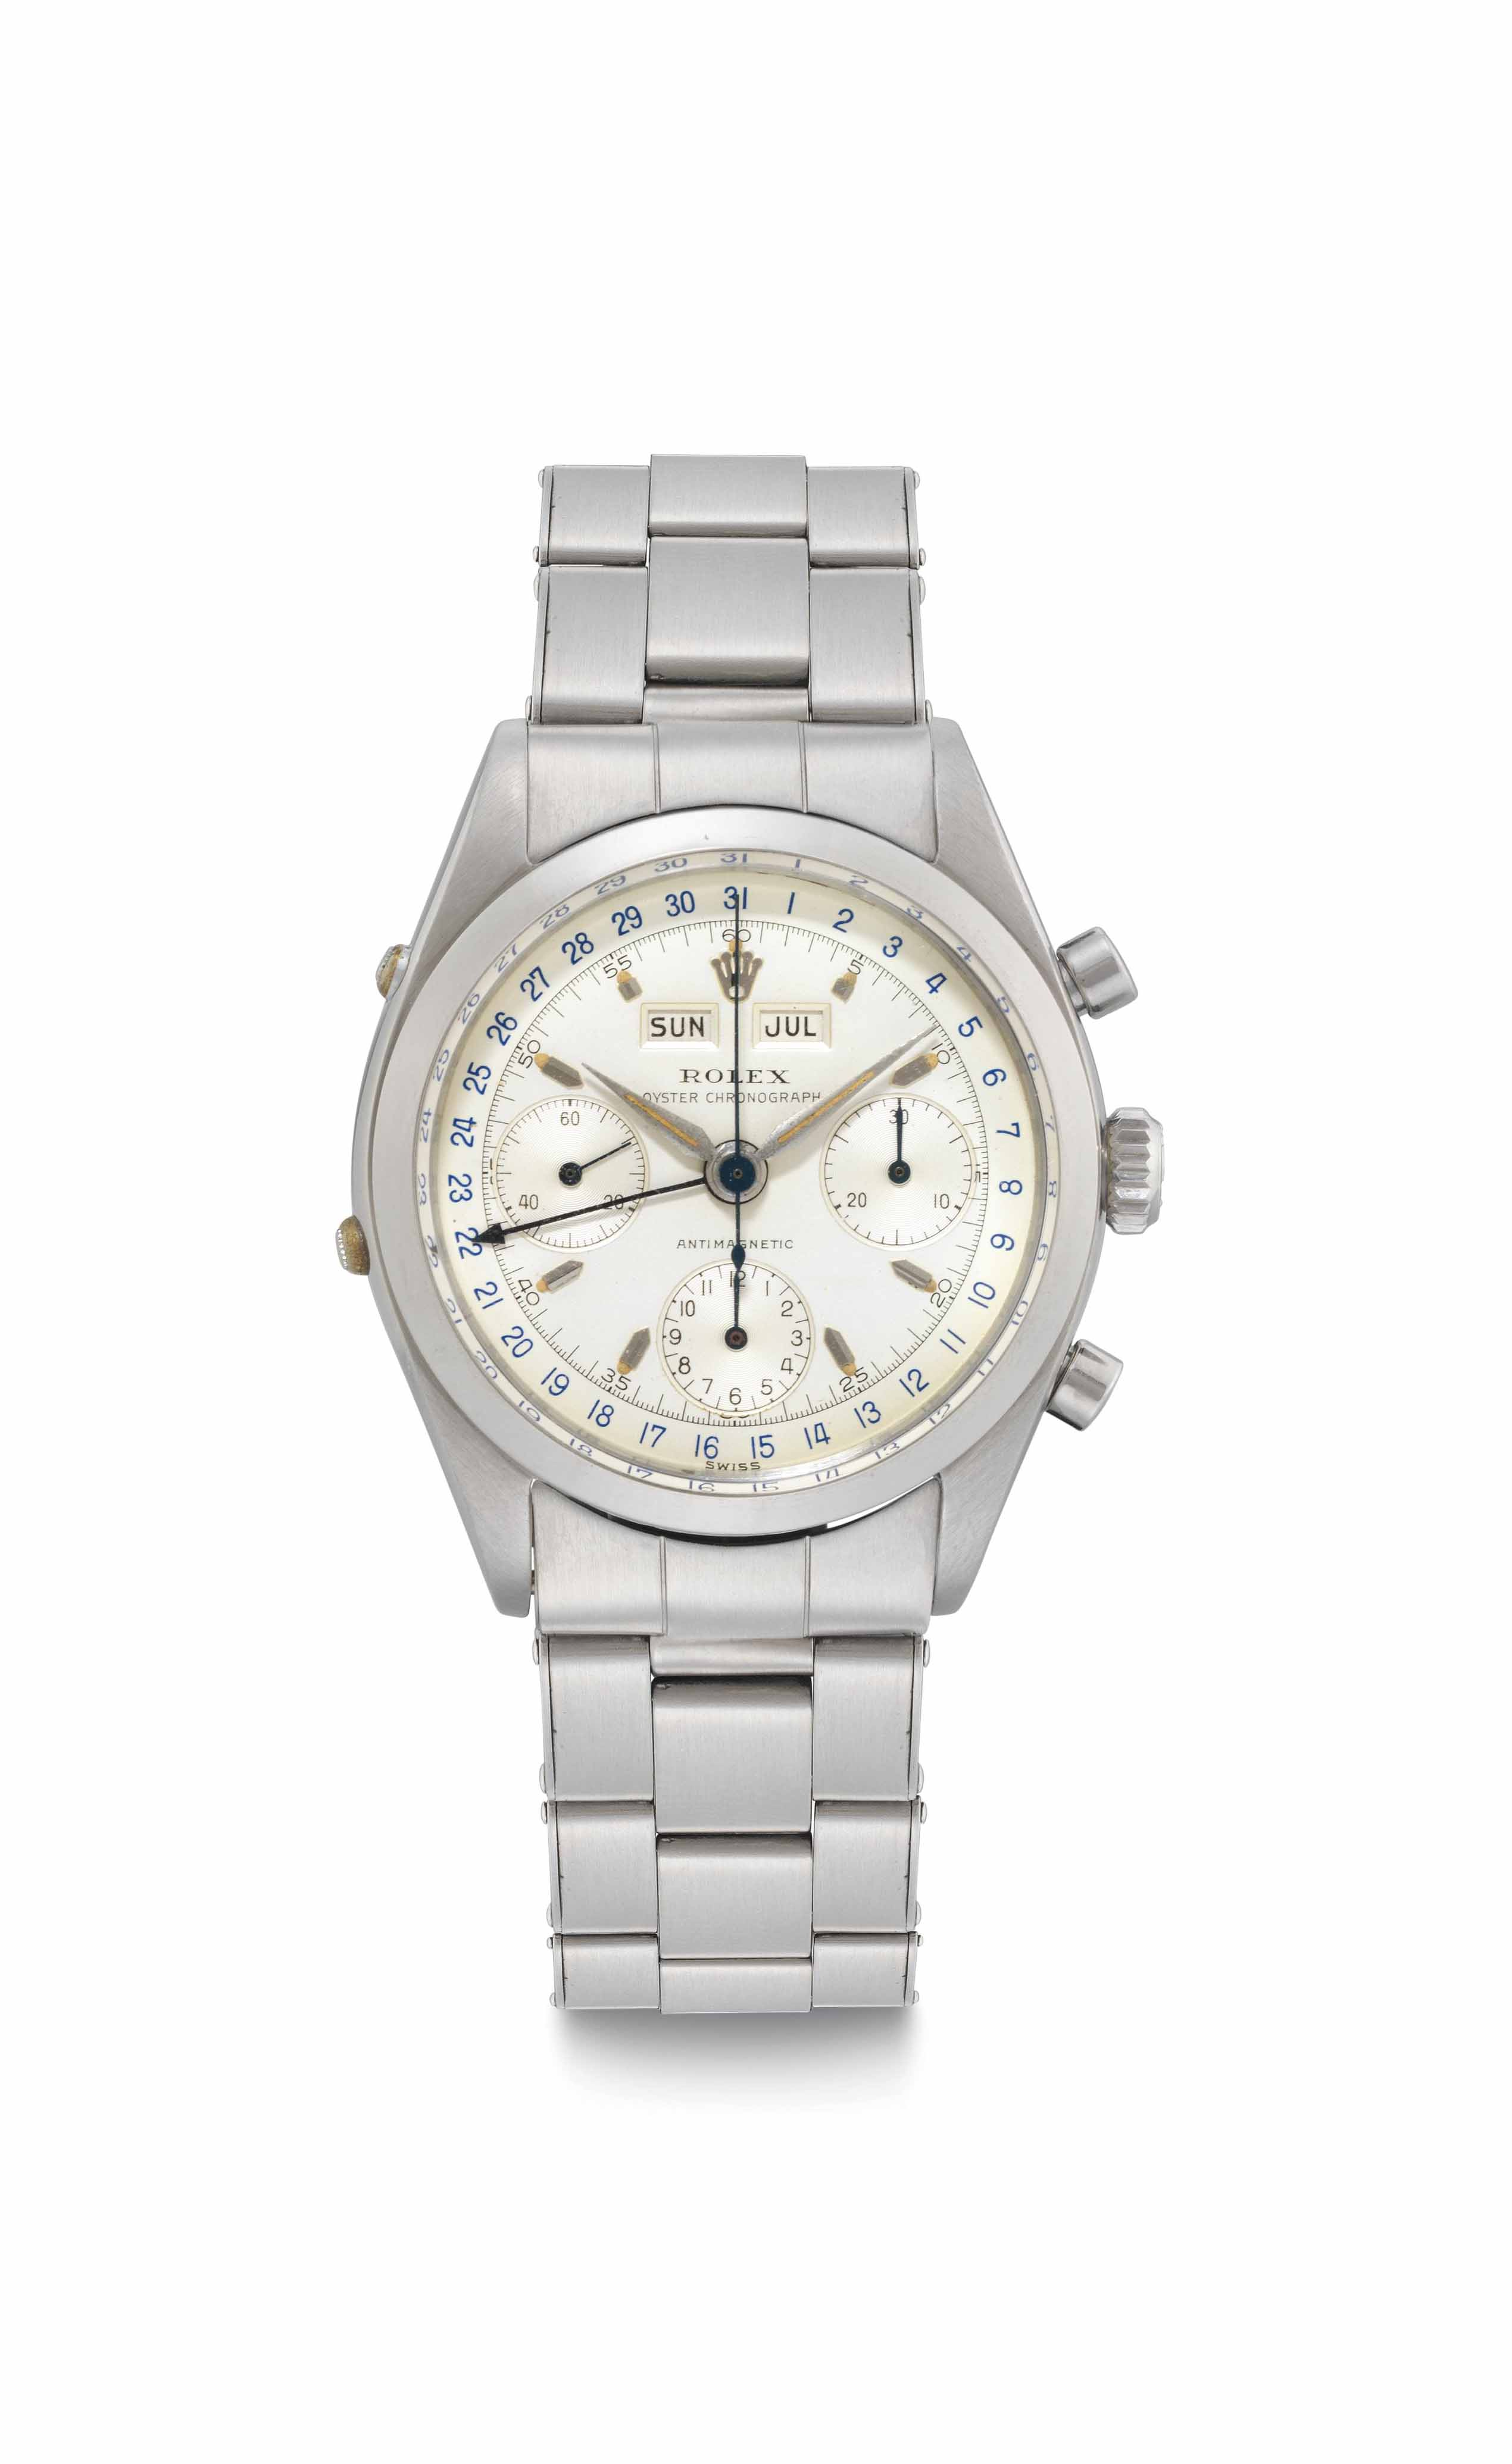 Rolex. A Fine and Rare Stainless Steel Triple Calendar Chronograph Wristwatch with Bracelet